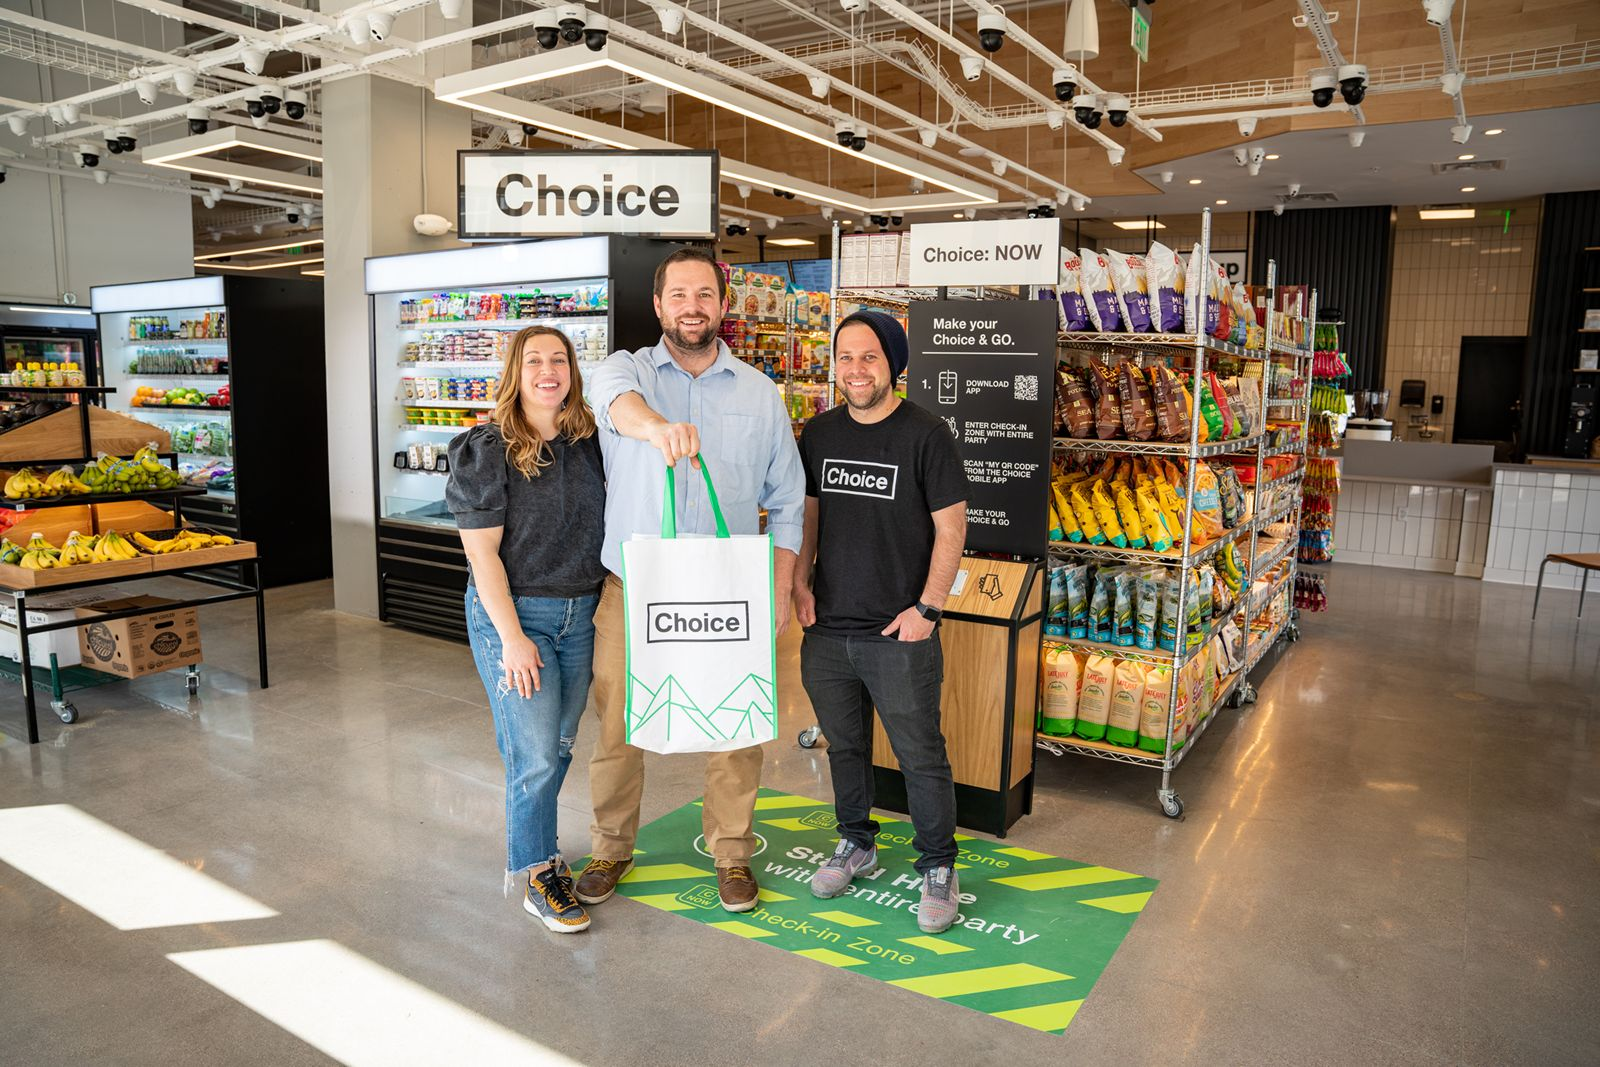 Choice Celebrates Grand Opening of New State-Of-The-Art Frictionless Market Powered by AiFi